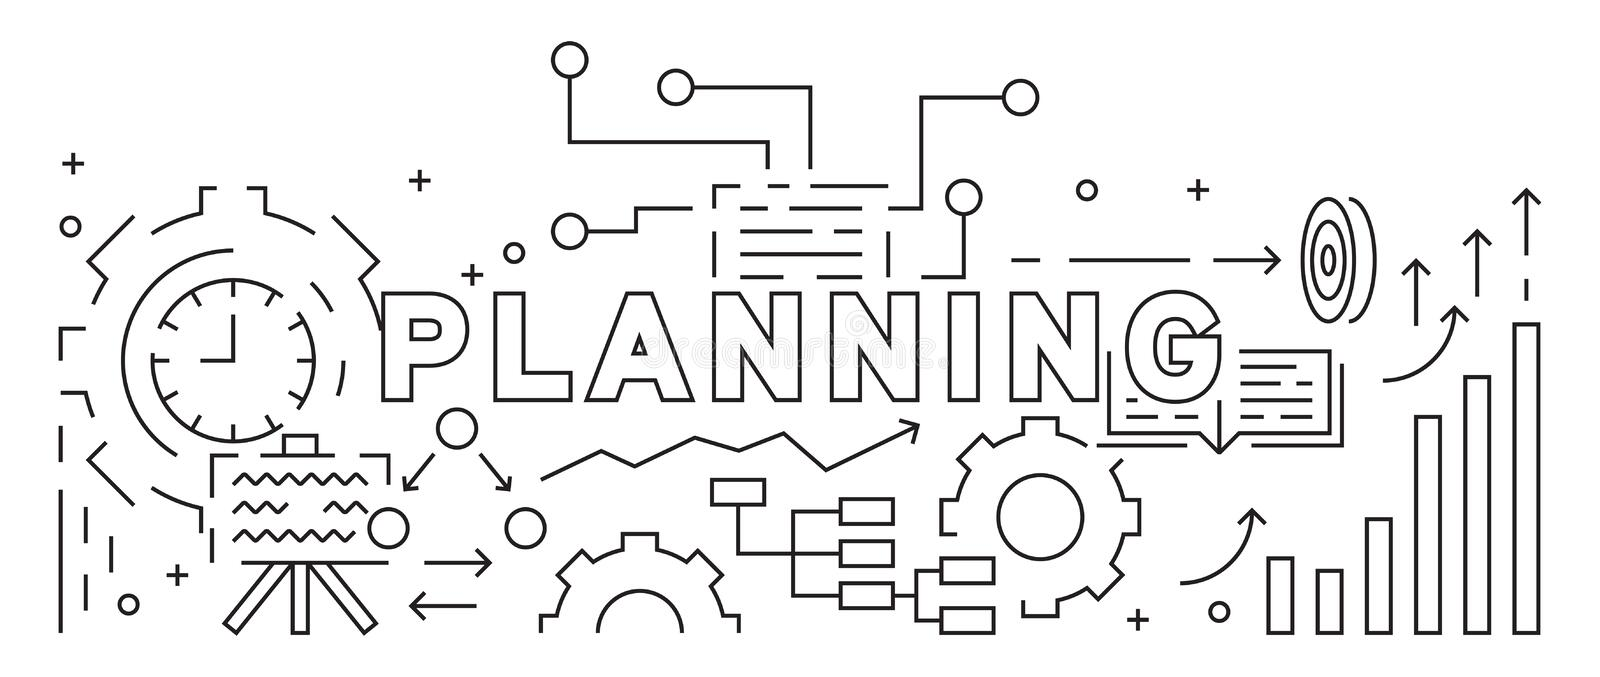 Planning And Business Strategy Concept. Line Art Design. Black And White Illustration. Business Banner, Background, and Landing Pa royalty free illustration